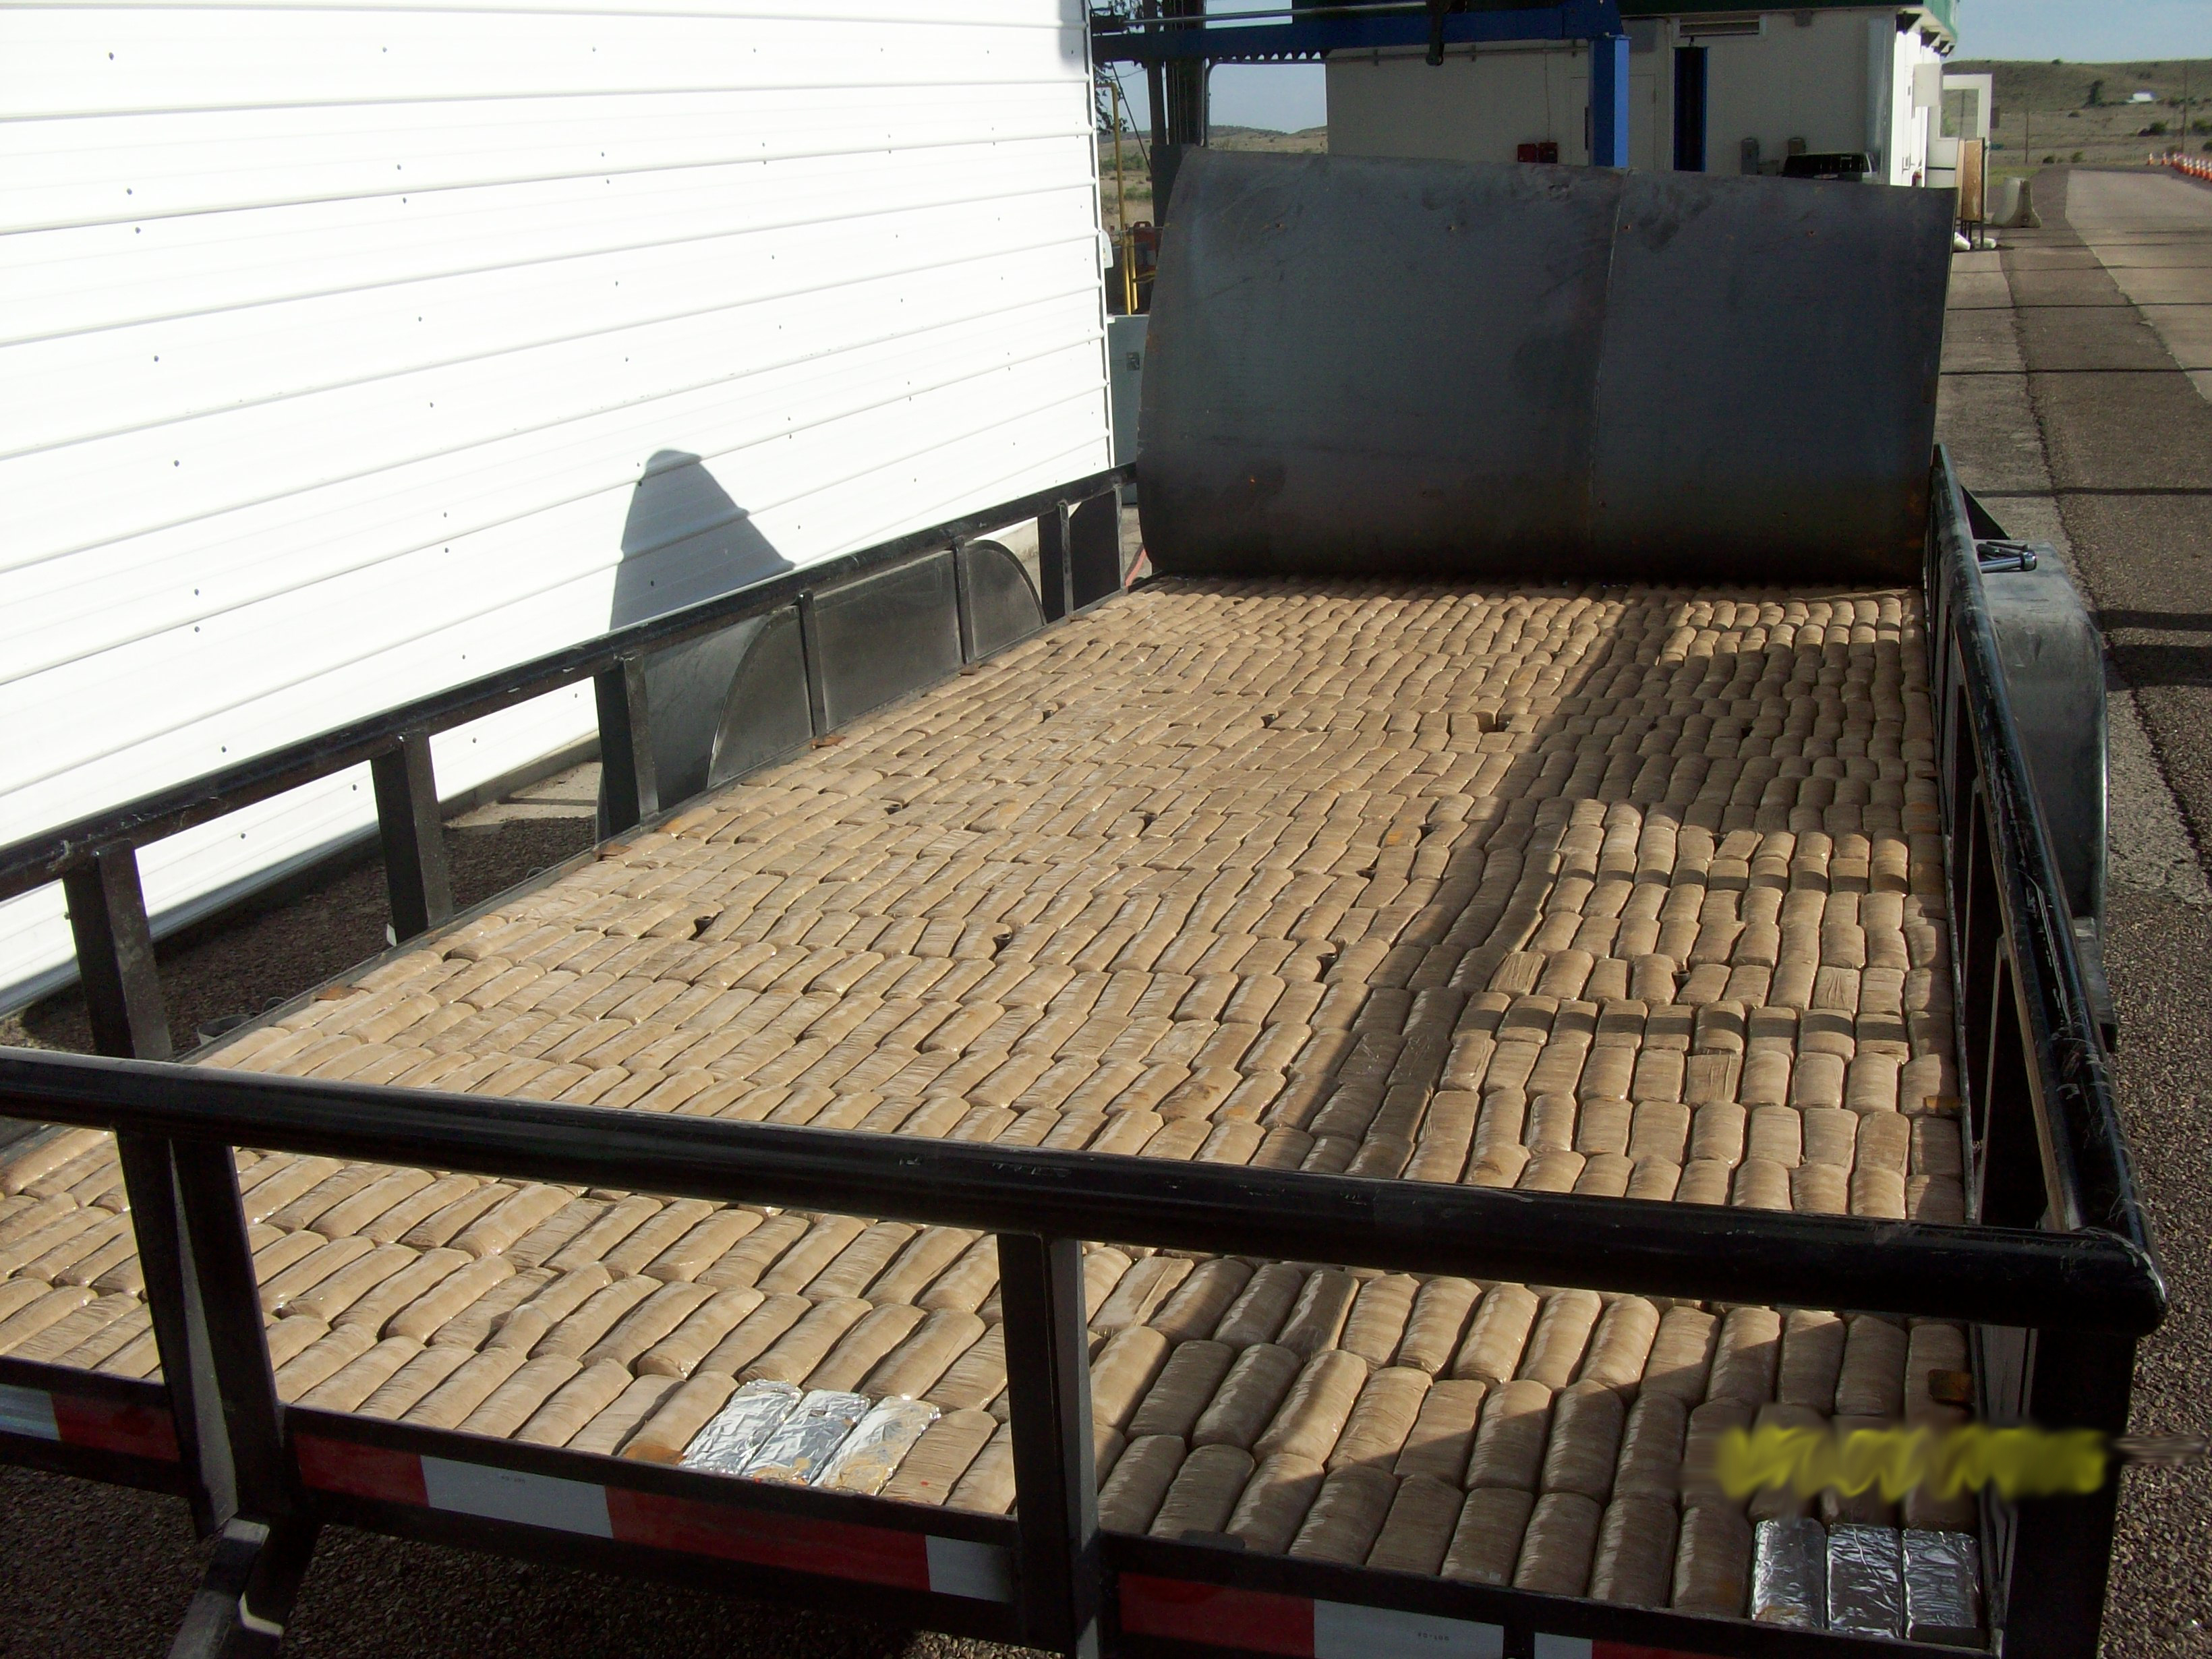 Border Patrol agents found 1,057 bundles of marijuana hidden in a trailer on Monday. (Customs and Border Protection)